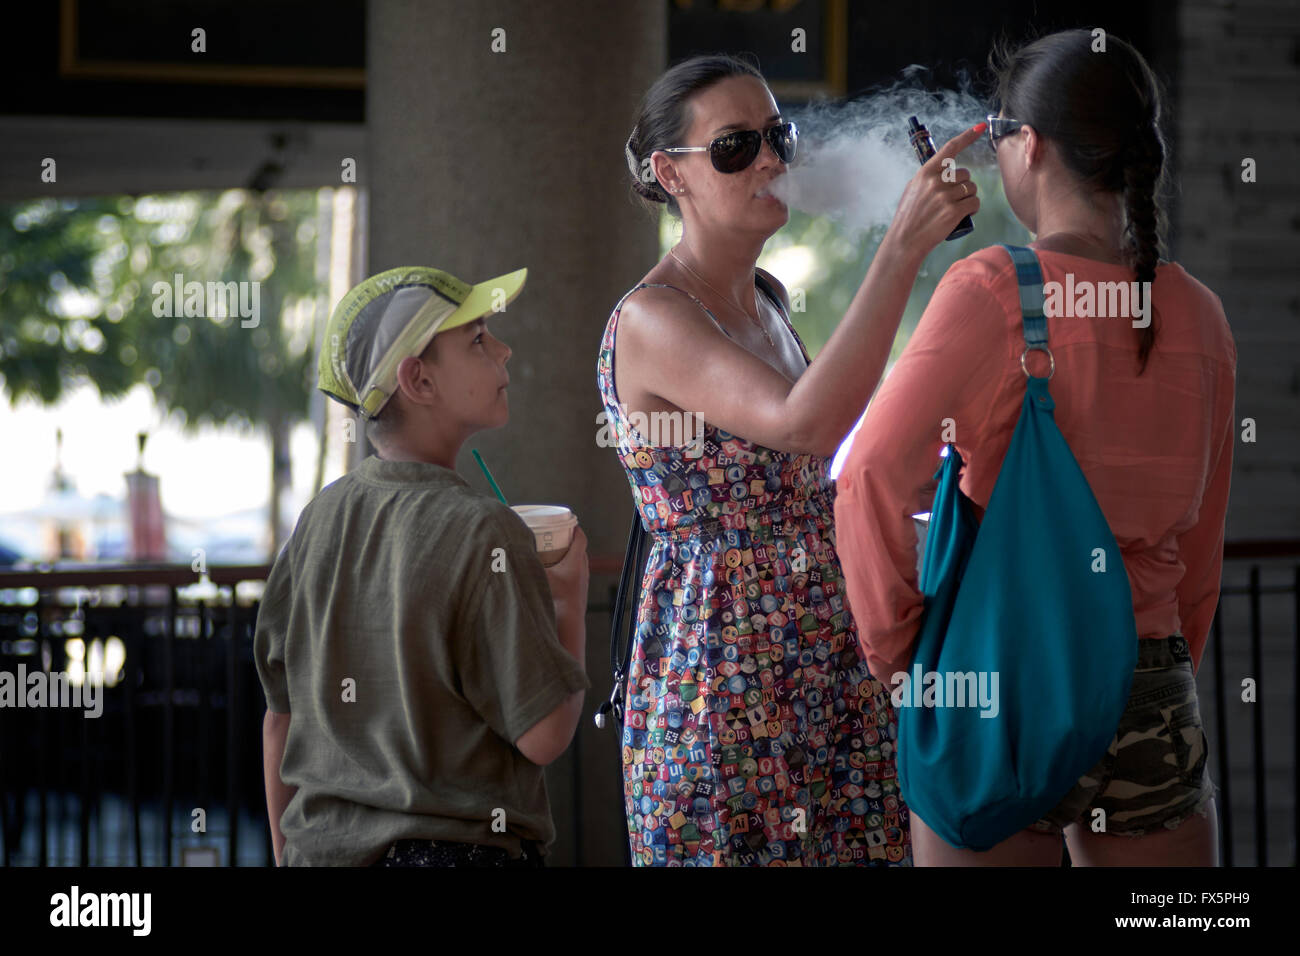 Passive smoking. Mother smoking e cigarette and blowing smoke into child's face. - Stock Image